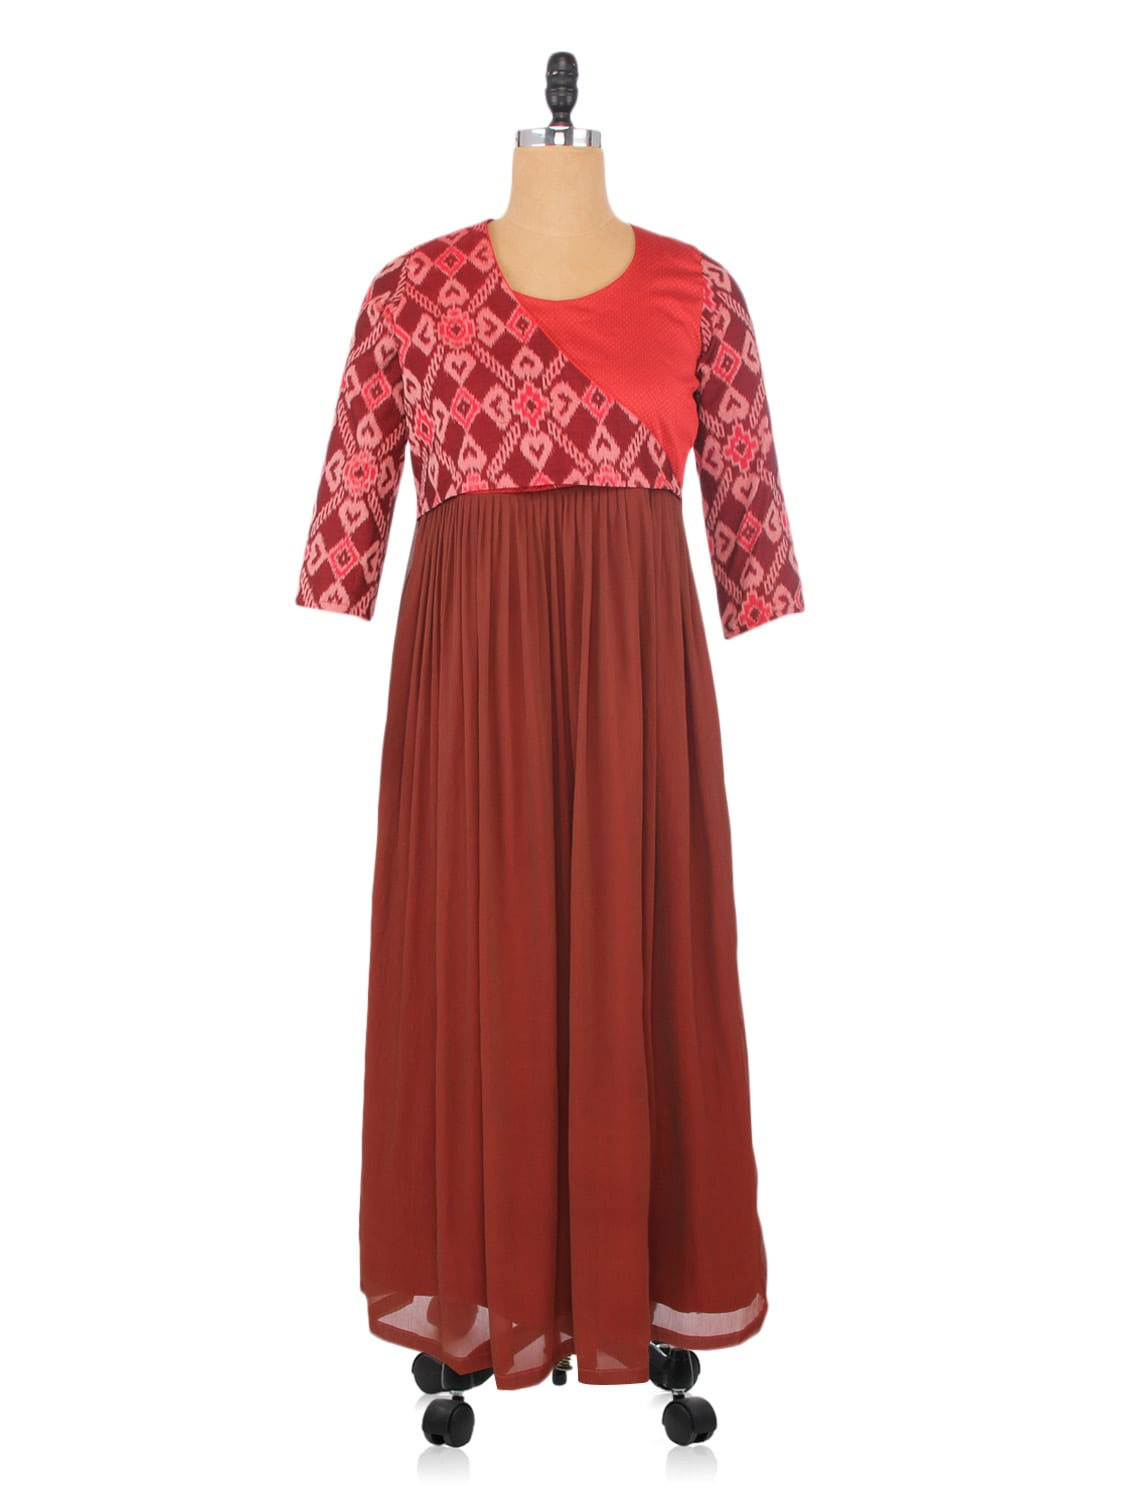 Maroon And Brown Cotton Chiffon Printed Dress - By